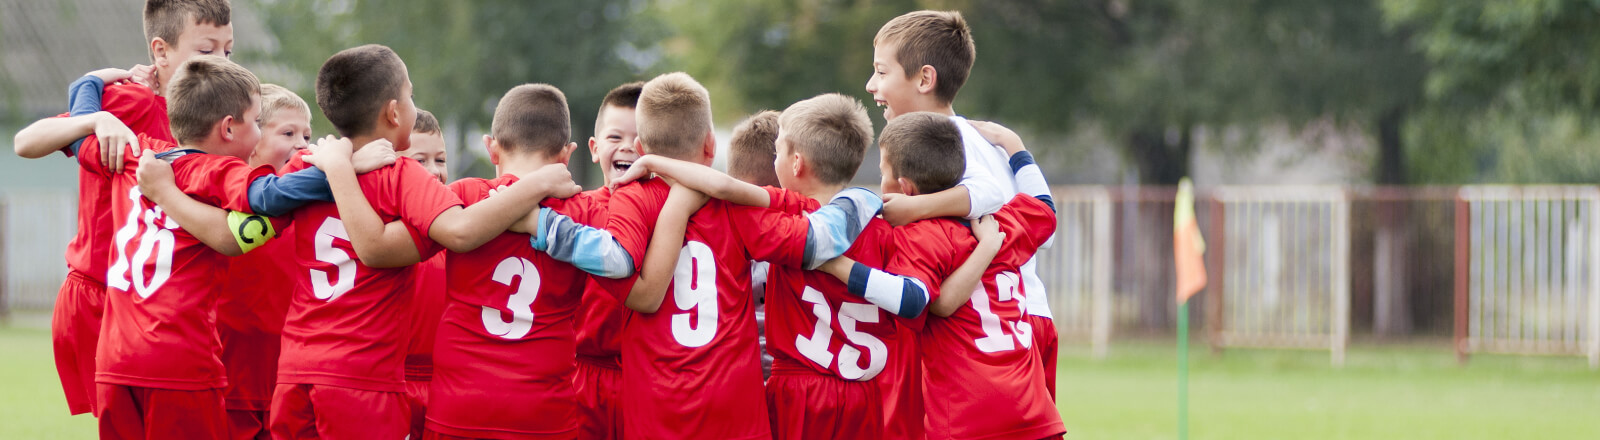 Should my business sponsor a local youth sports team?